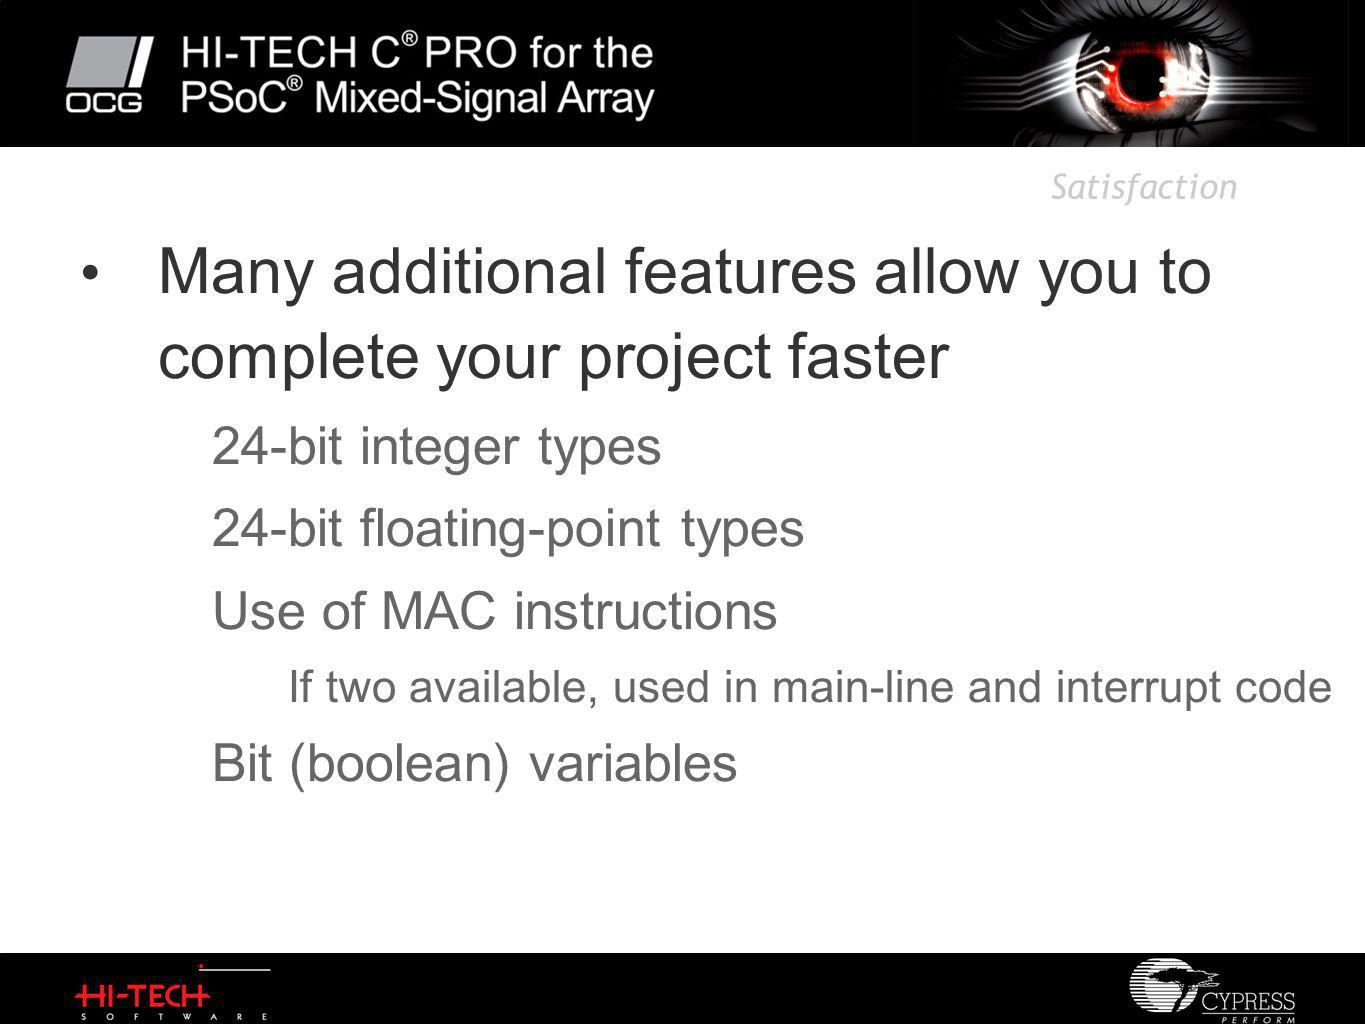 Satisfaction Many additional features allow you to complete your project faster 24-bit integer types 24-bit floating-point types Use of MAC instructions If two available, used in main-line and interrupt code Bit (boolean) variables